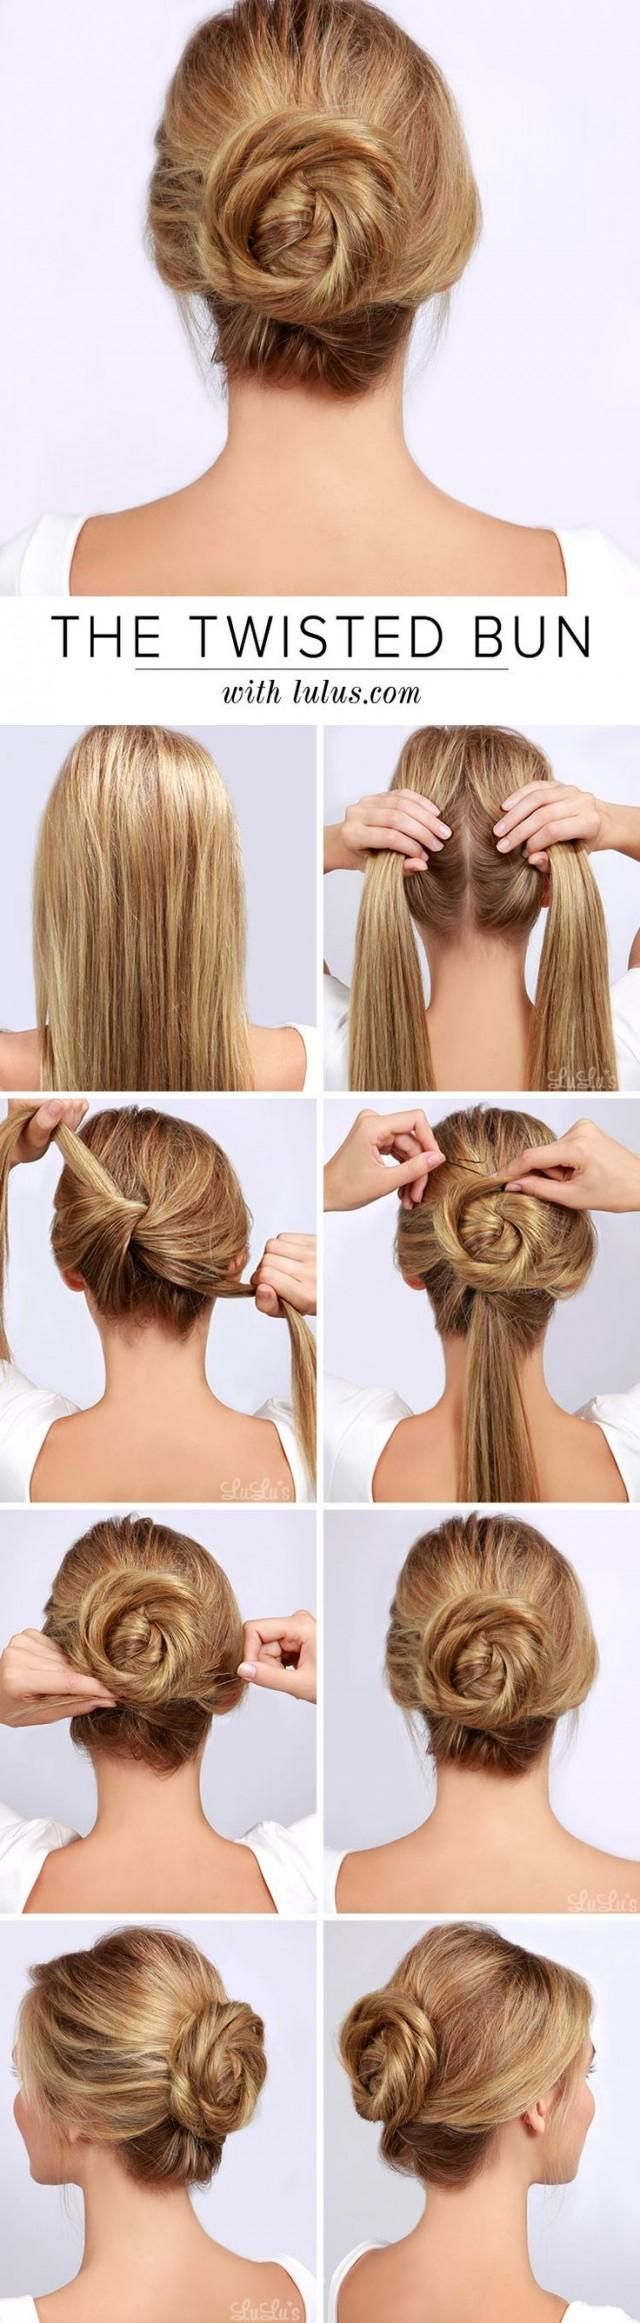 Hairstyle Tutorials Amusing Best 128 Hair Tutorials Images On Pinterest  Hairstyle Ideas Easy